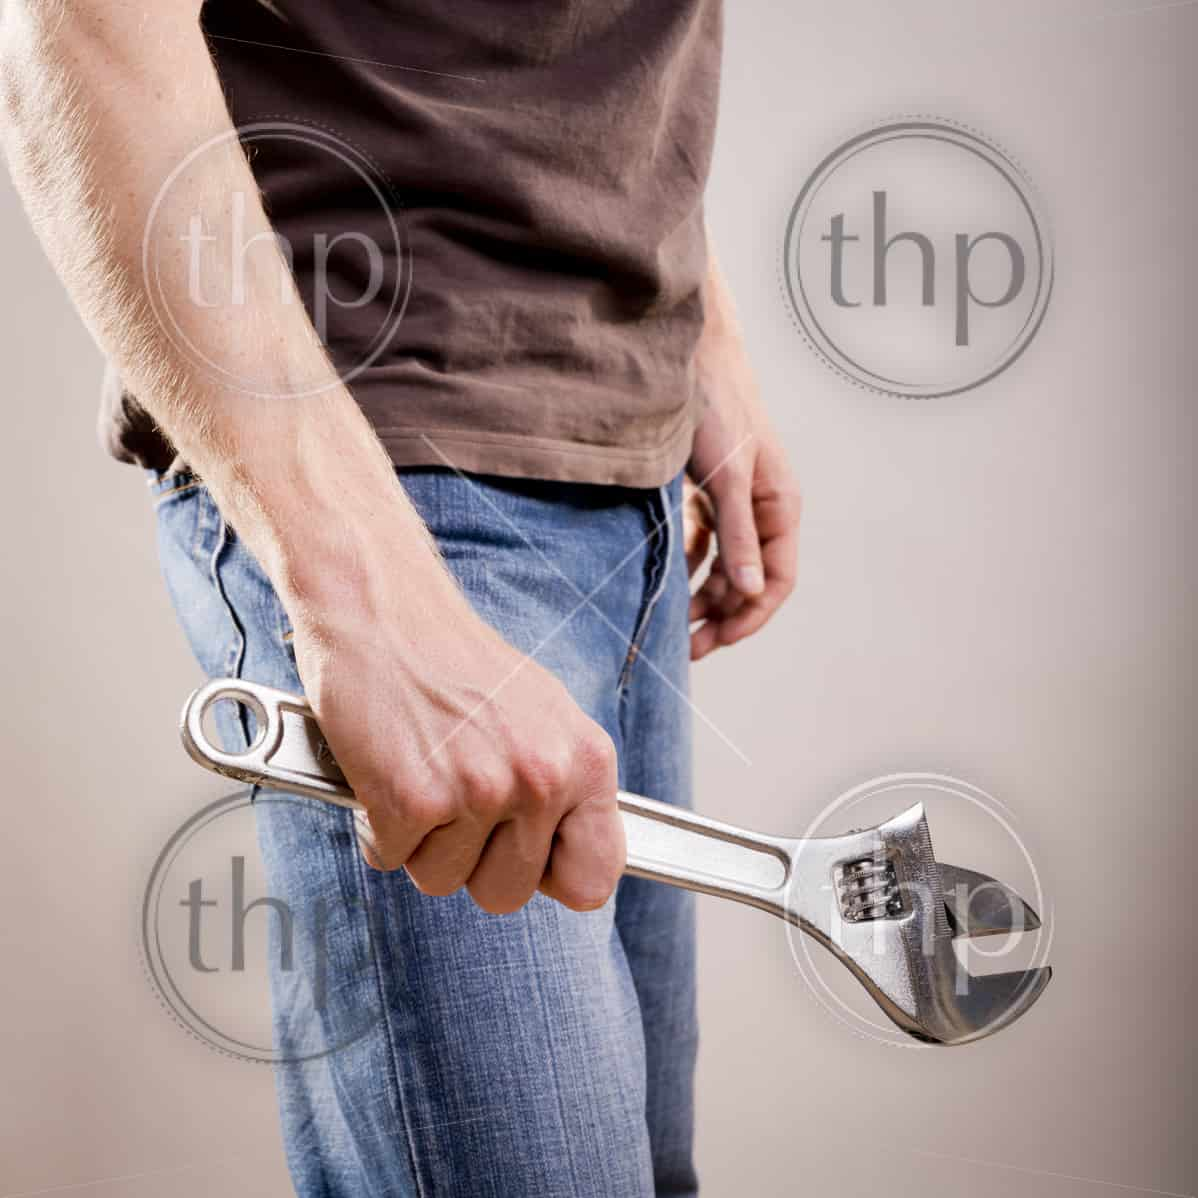 A young man dressed in casual clothes holds a large adjustable wrench or spanner